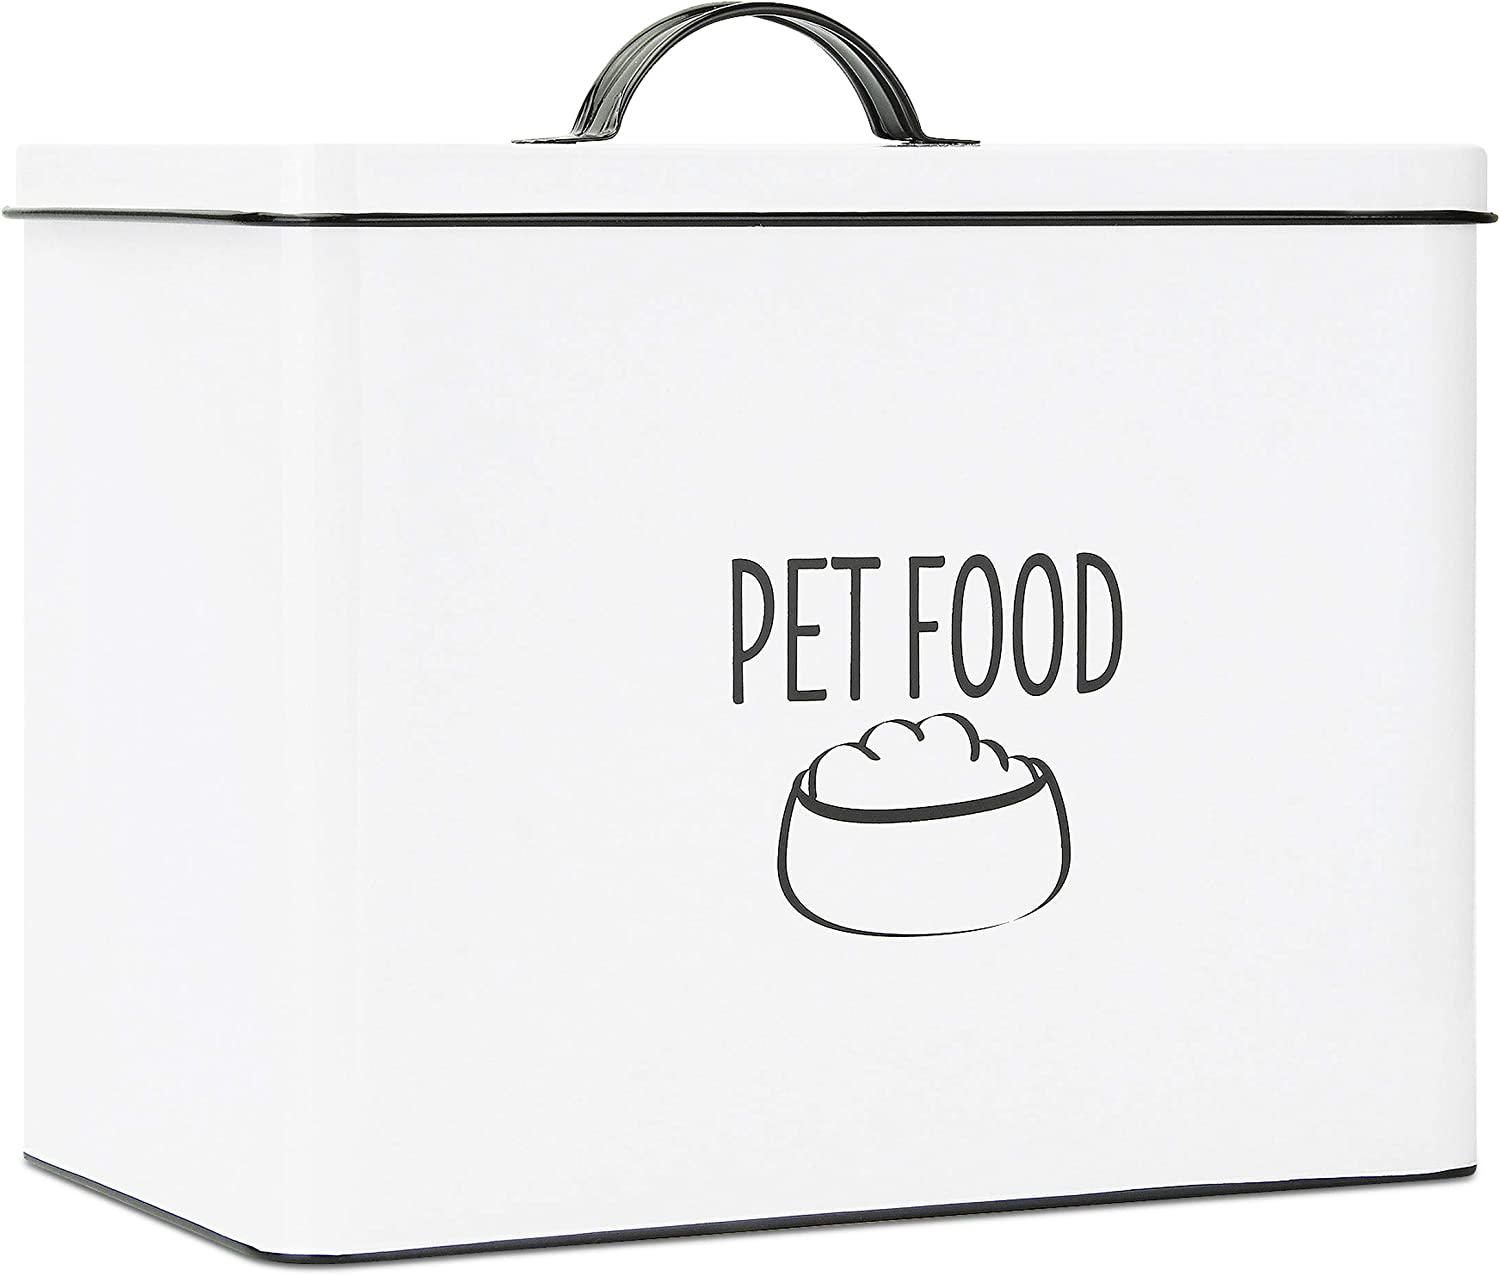 OUTSHINE White Farmhouse Food Bin - Can Be Personalized